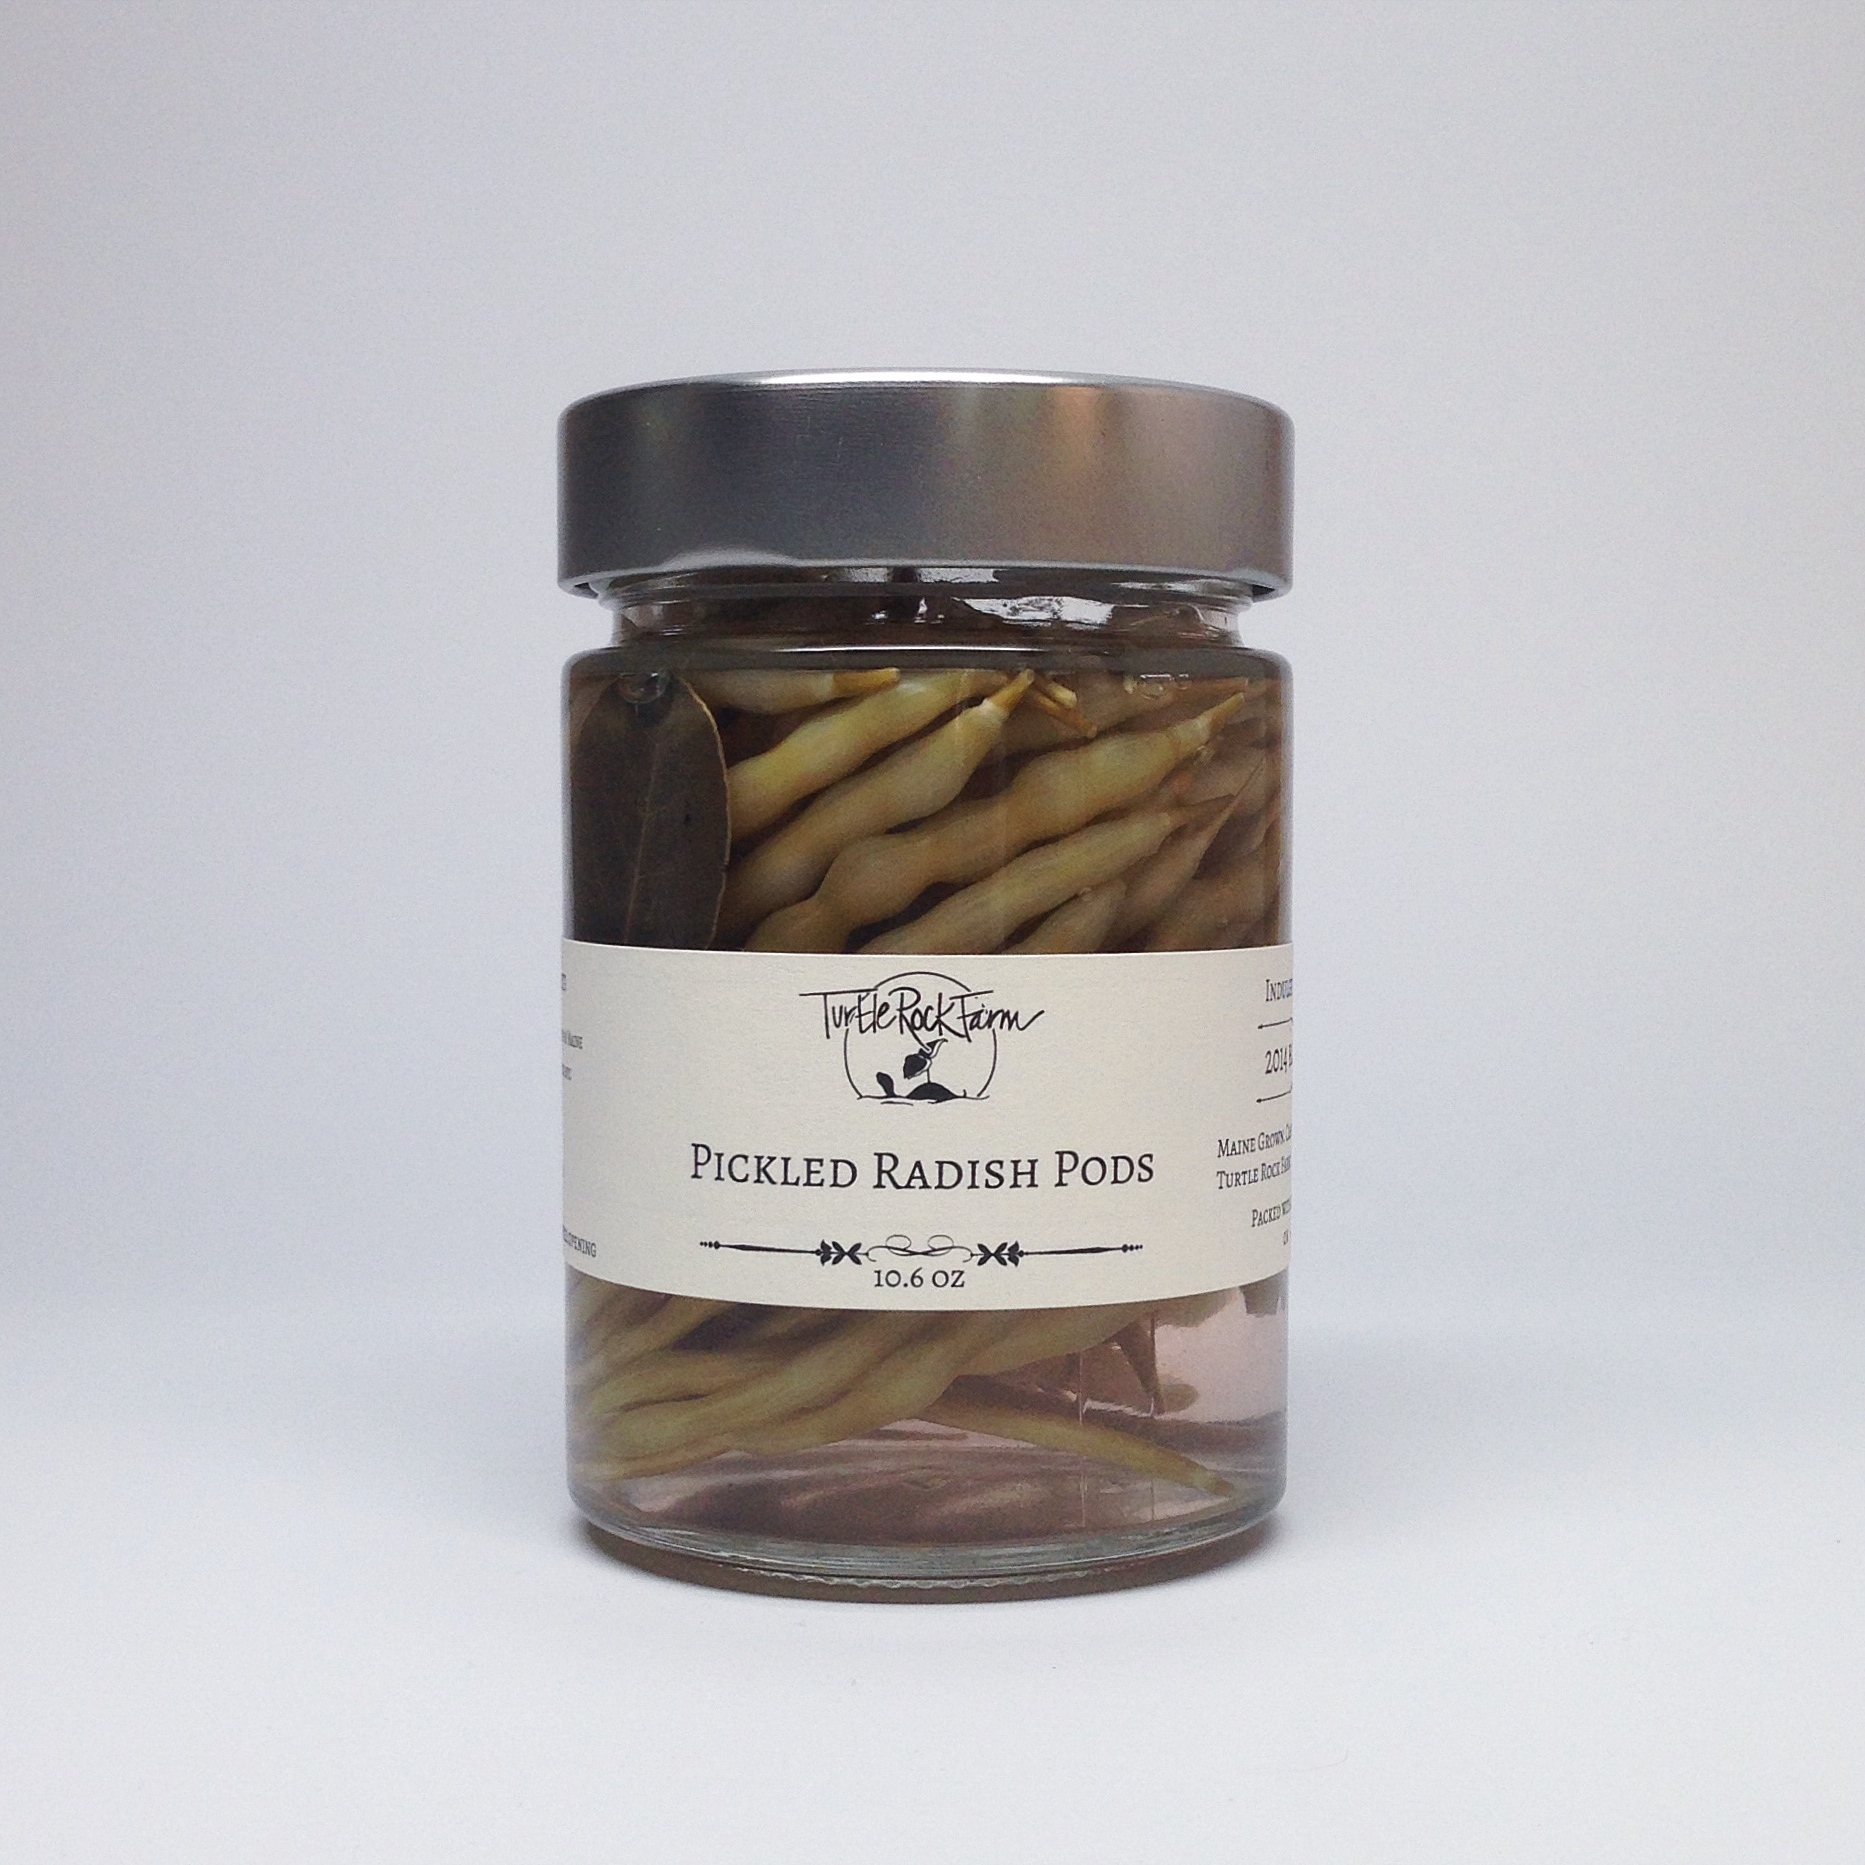 Pickled Radish Pods